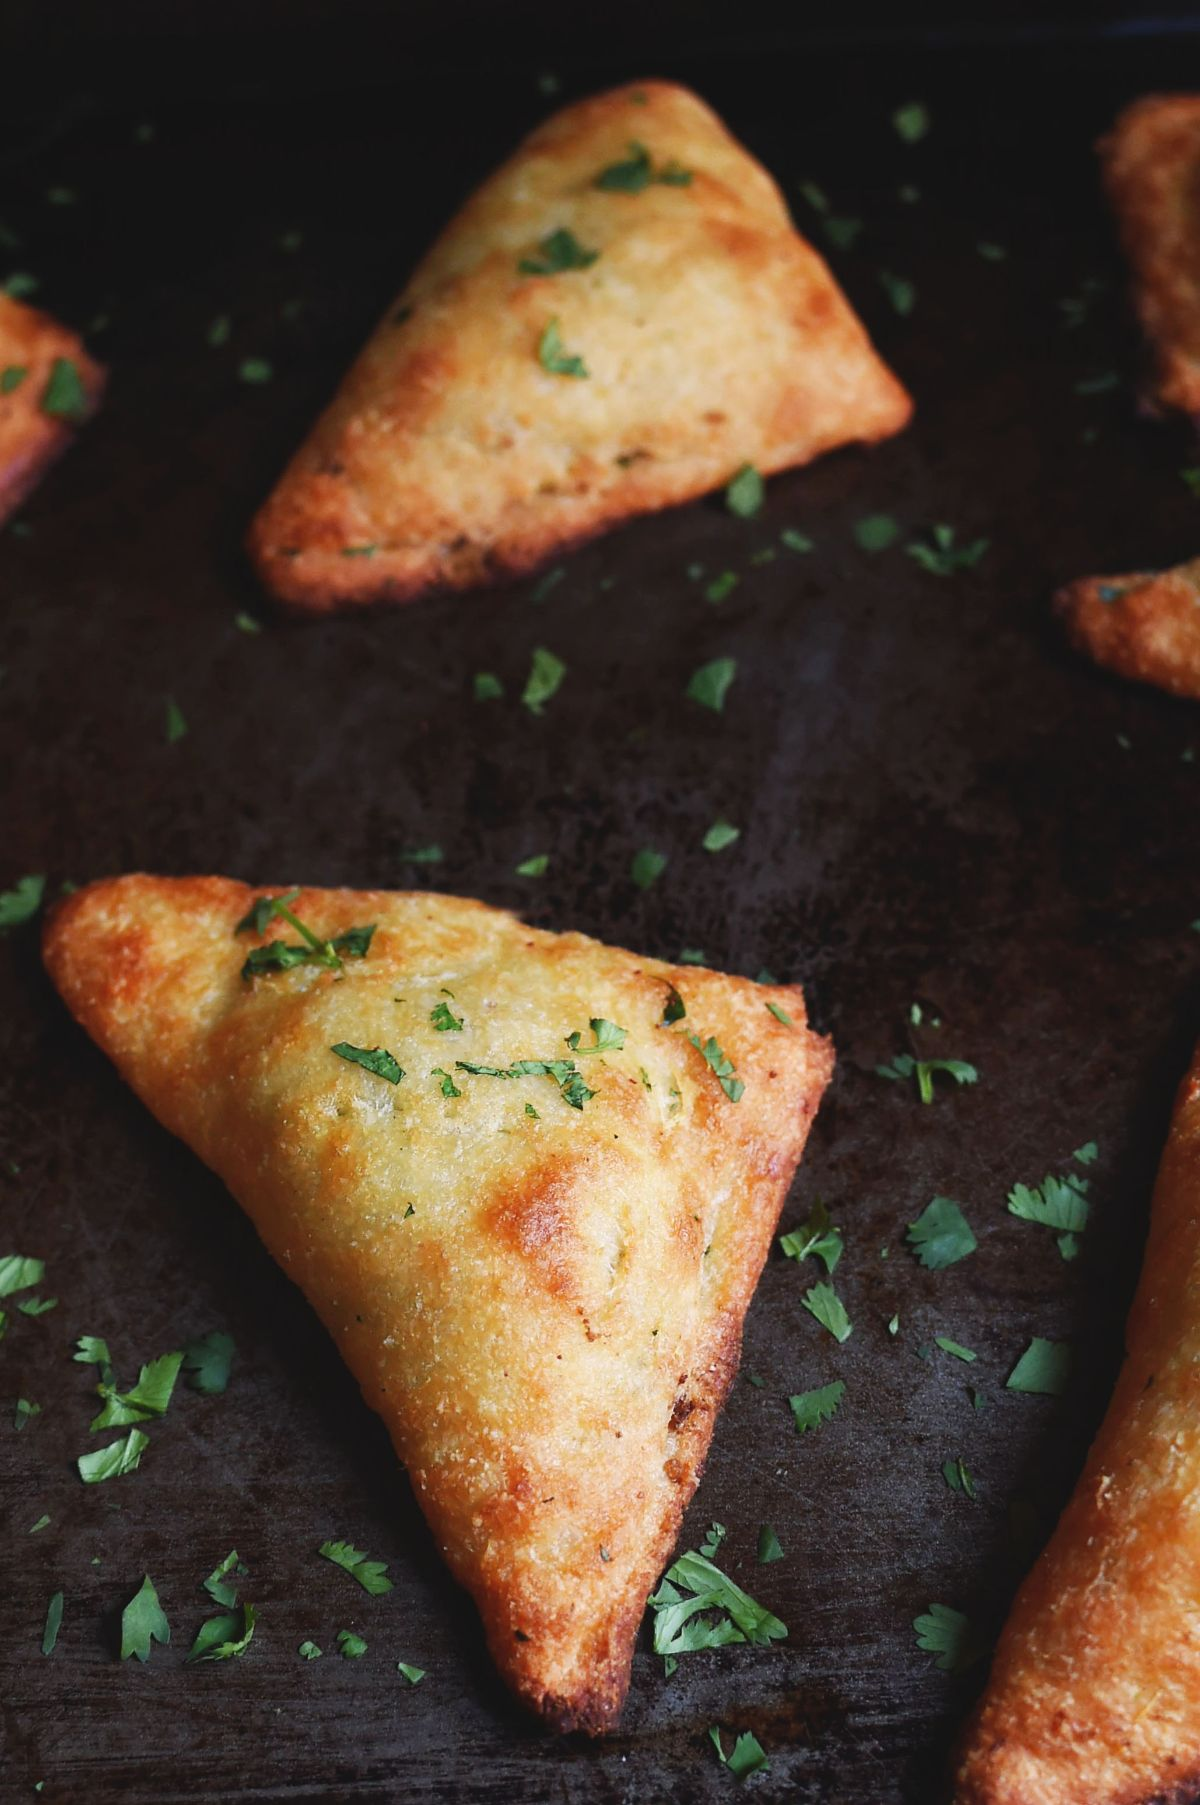 A partial shot of a skillet with 2 vegetable samosas sprinkled with chopped herbs